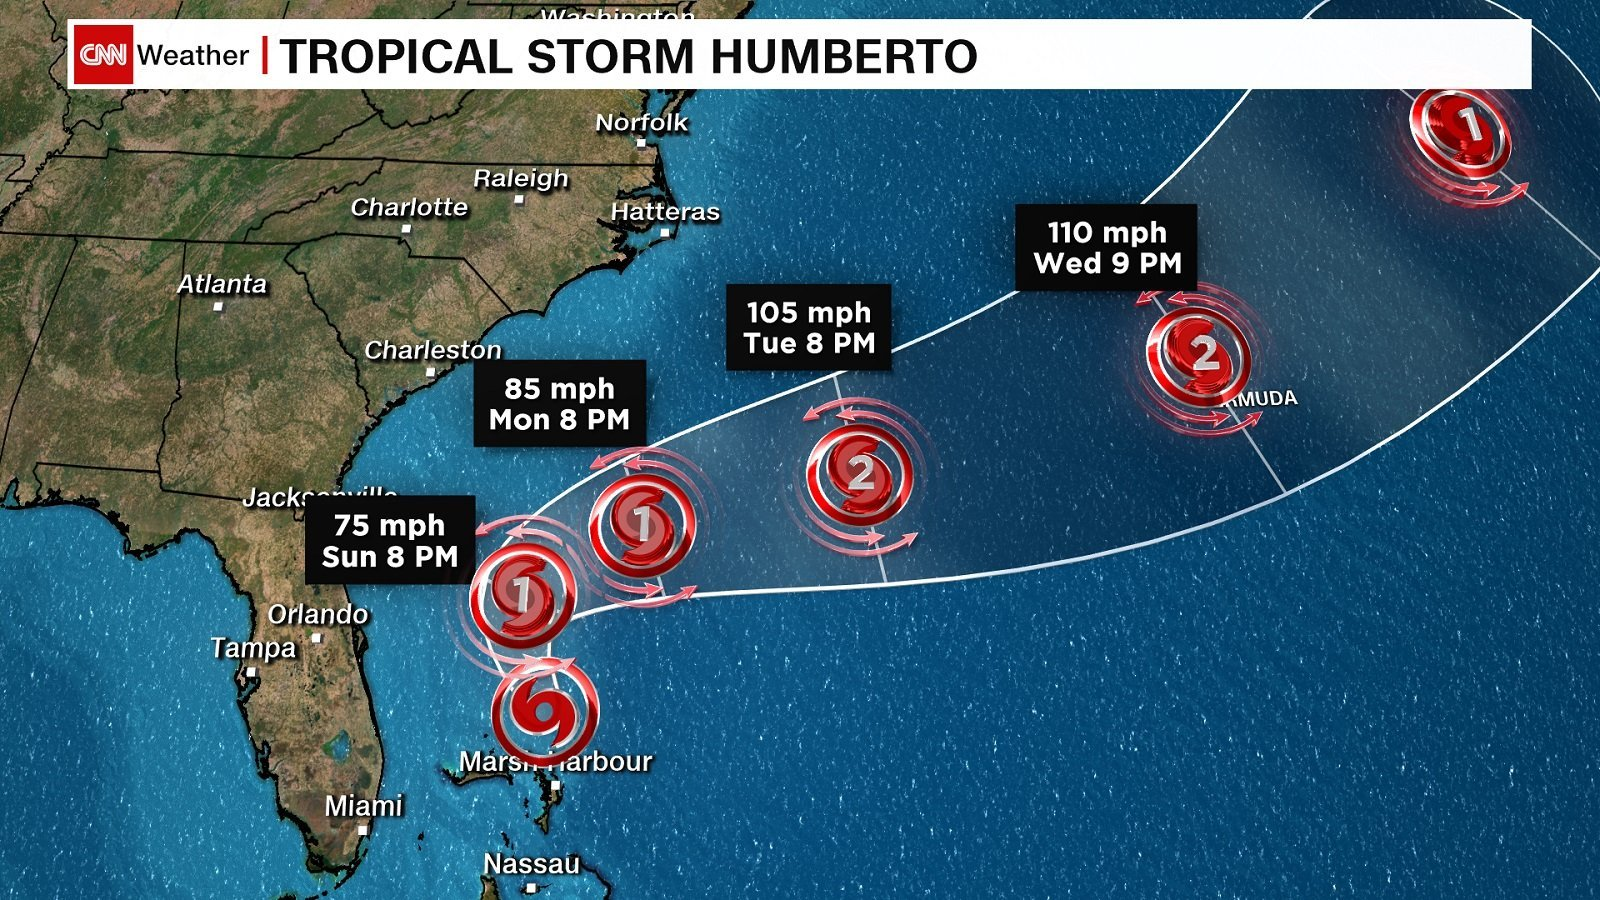 Humberto was upgraded to a hurricane as it moved farther east into the Atlantic Ocean and away from land. (Credit: CNN)